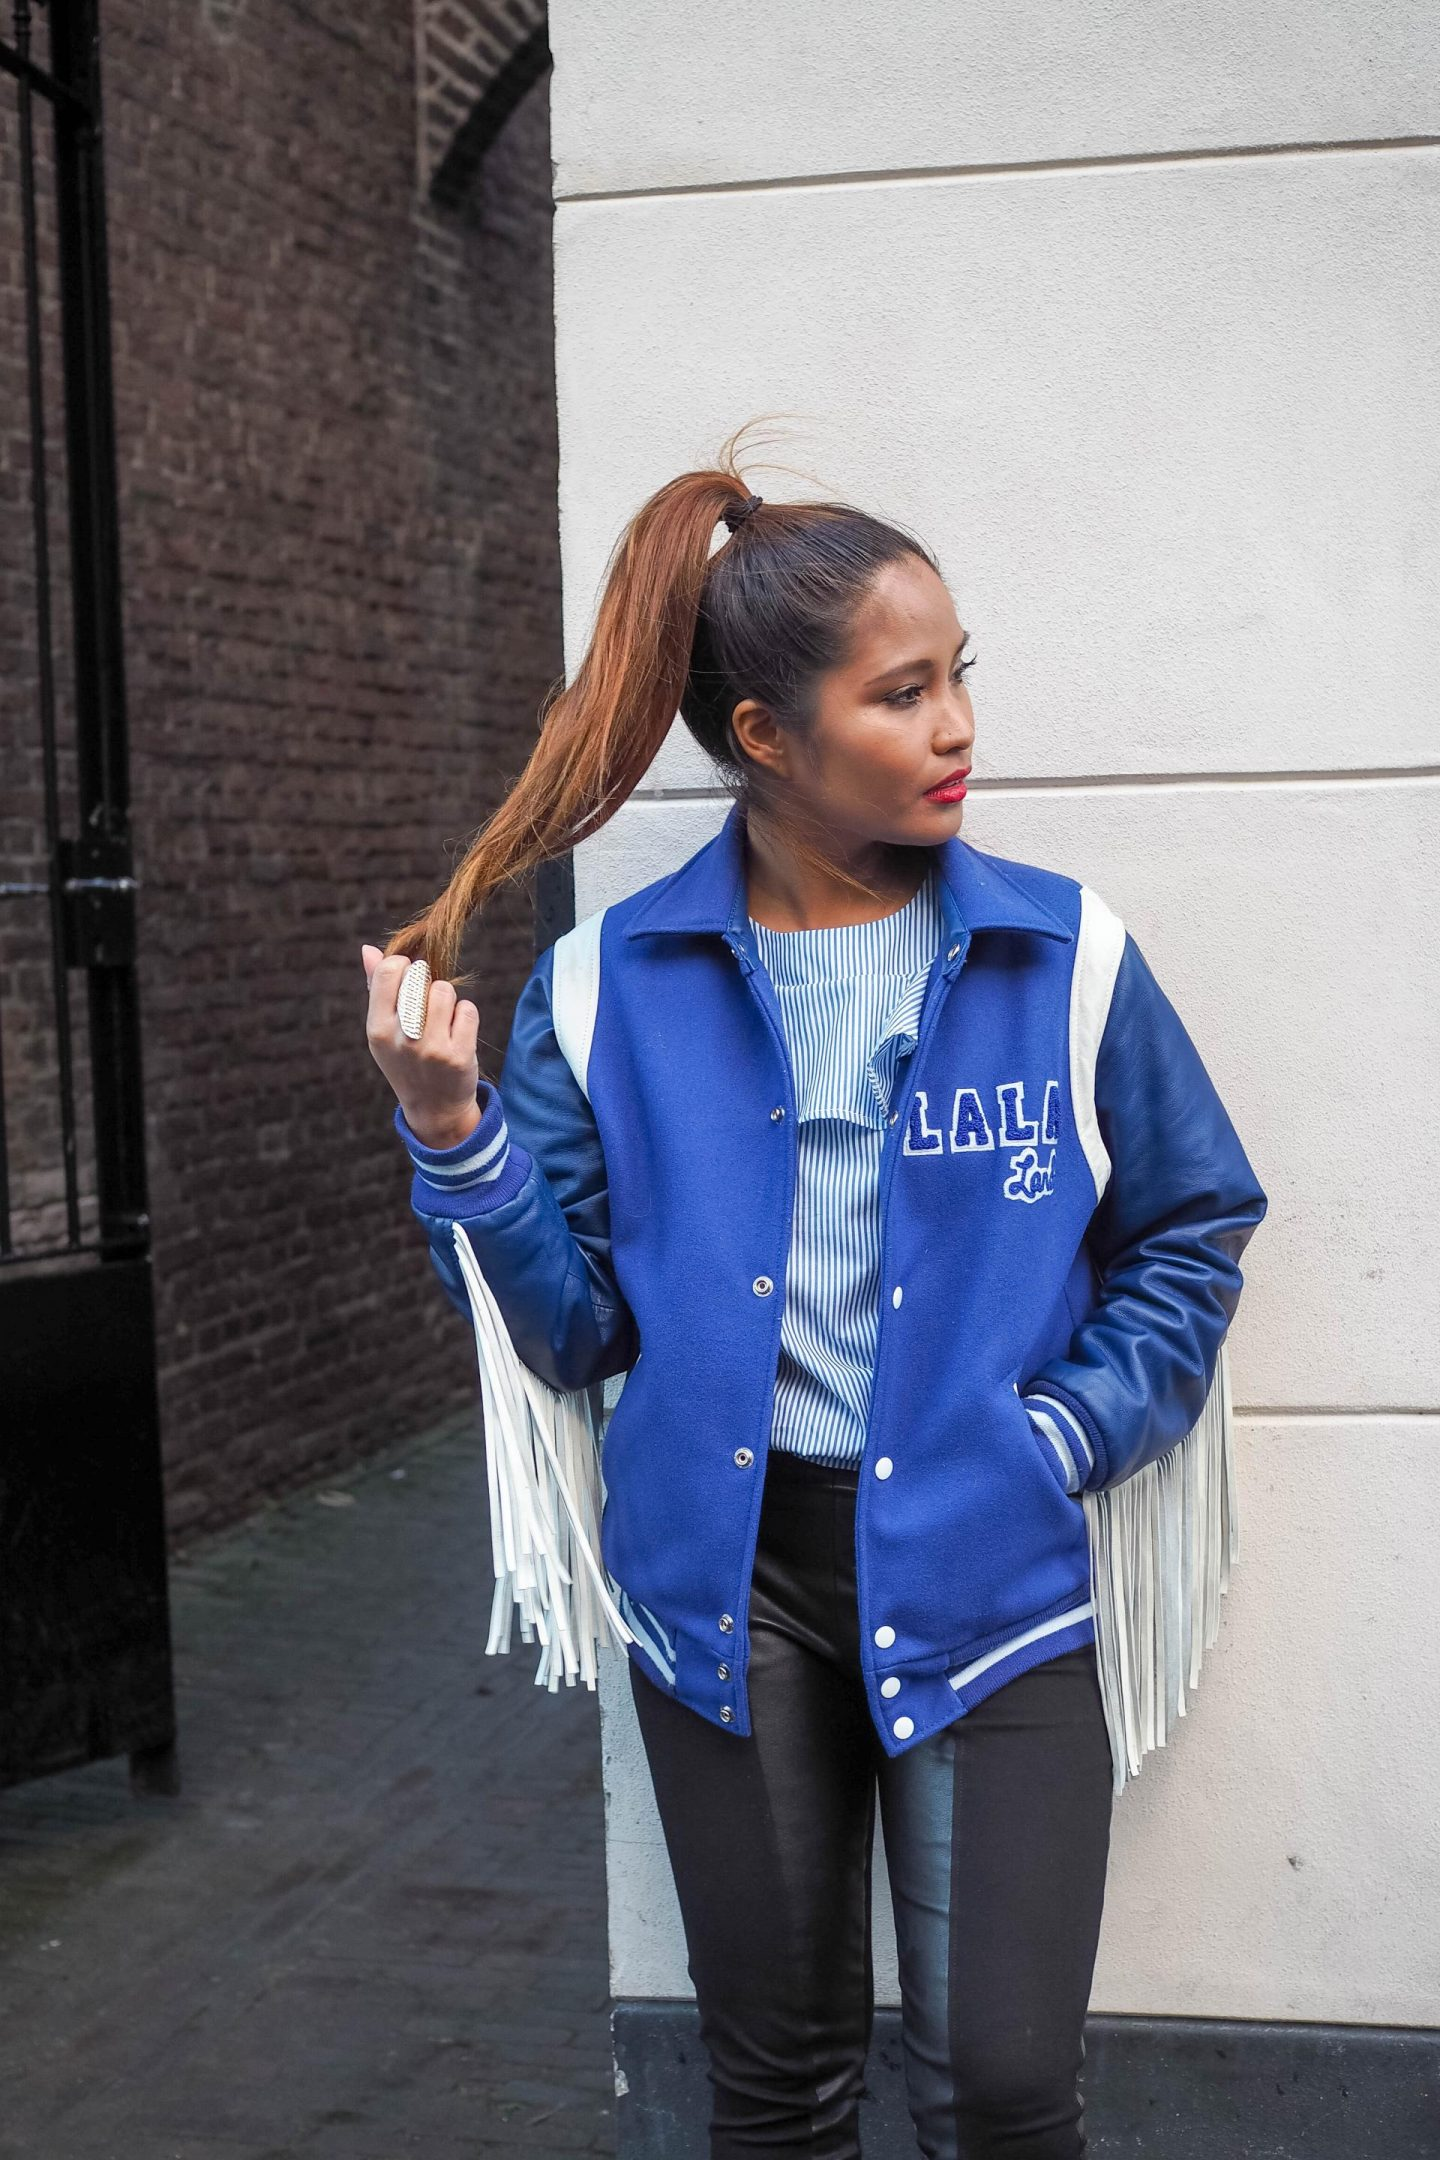 Blue baseball jacket with fringes and striped top